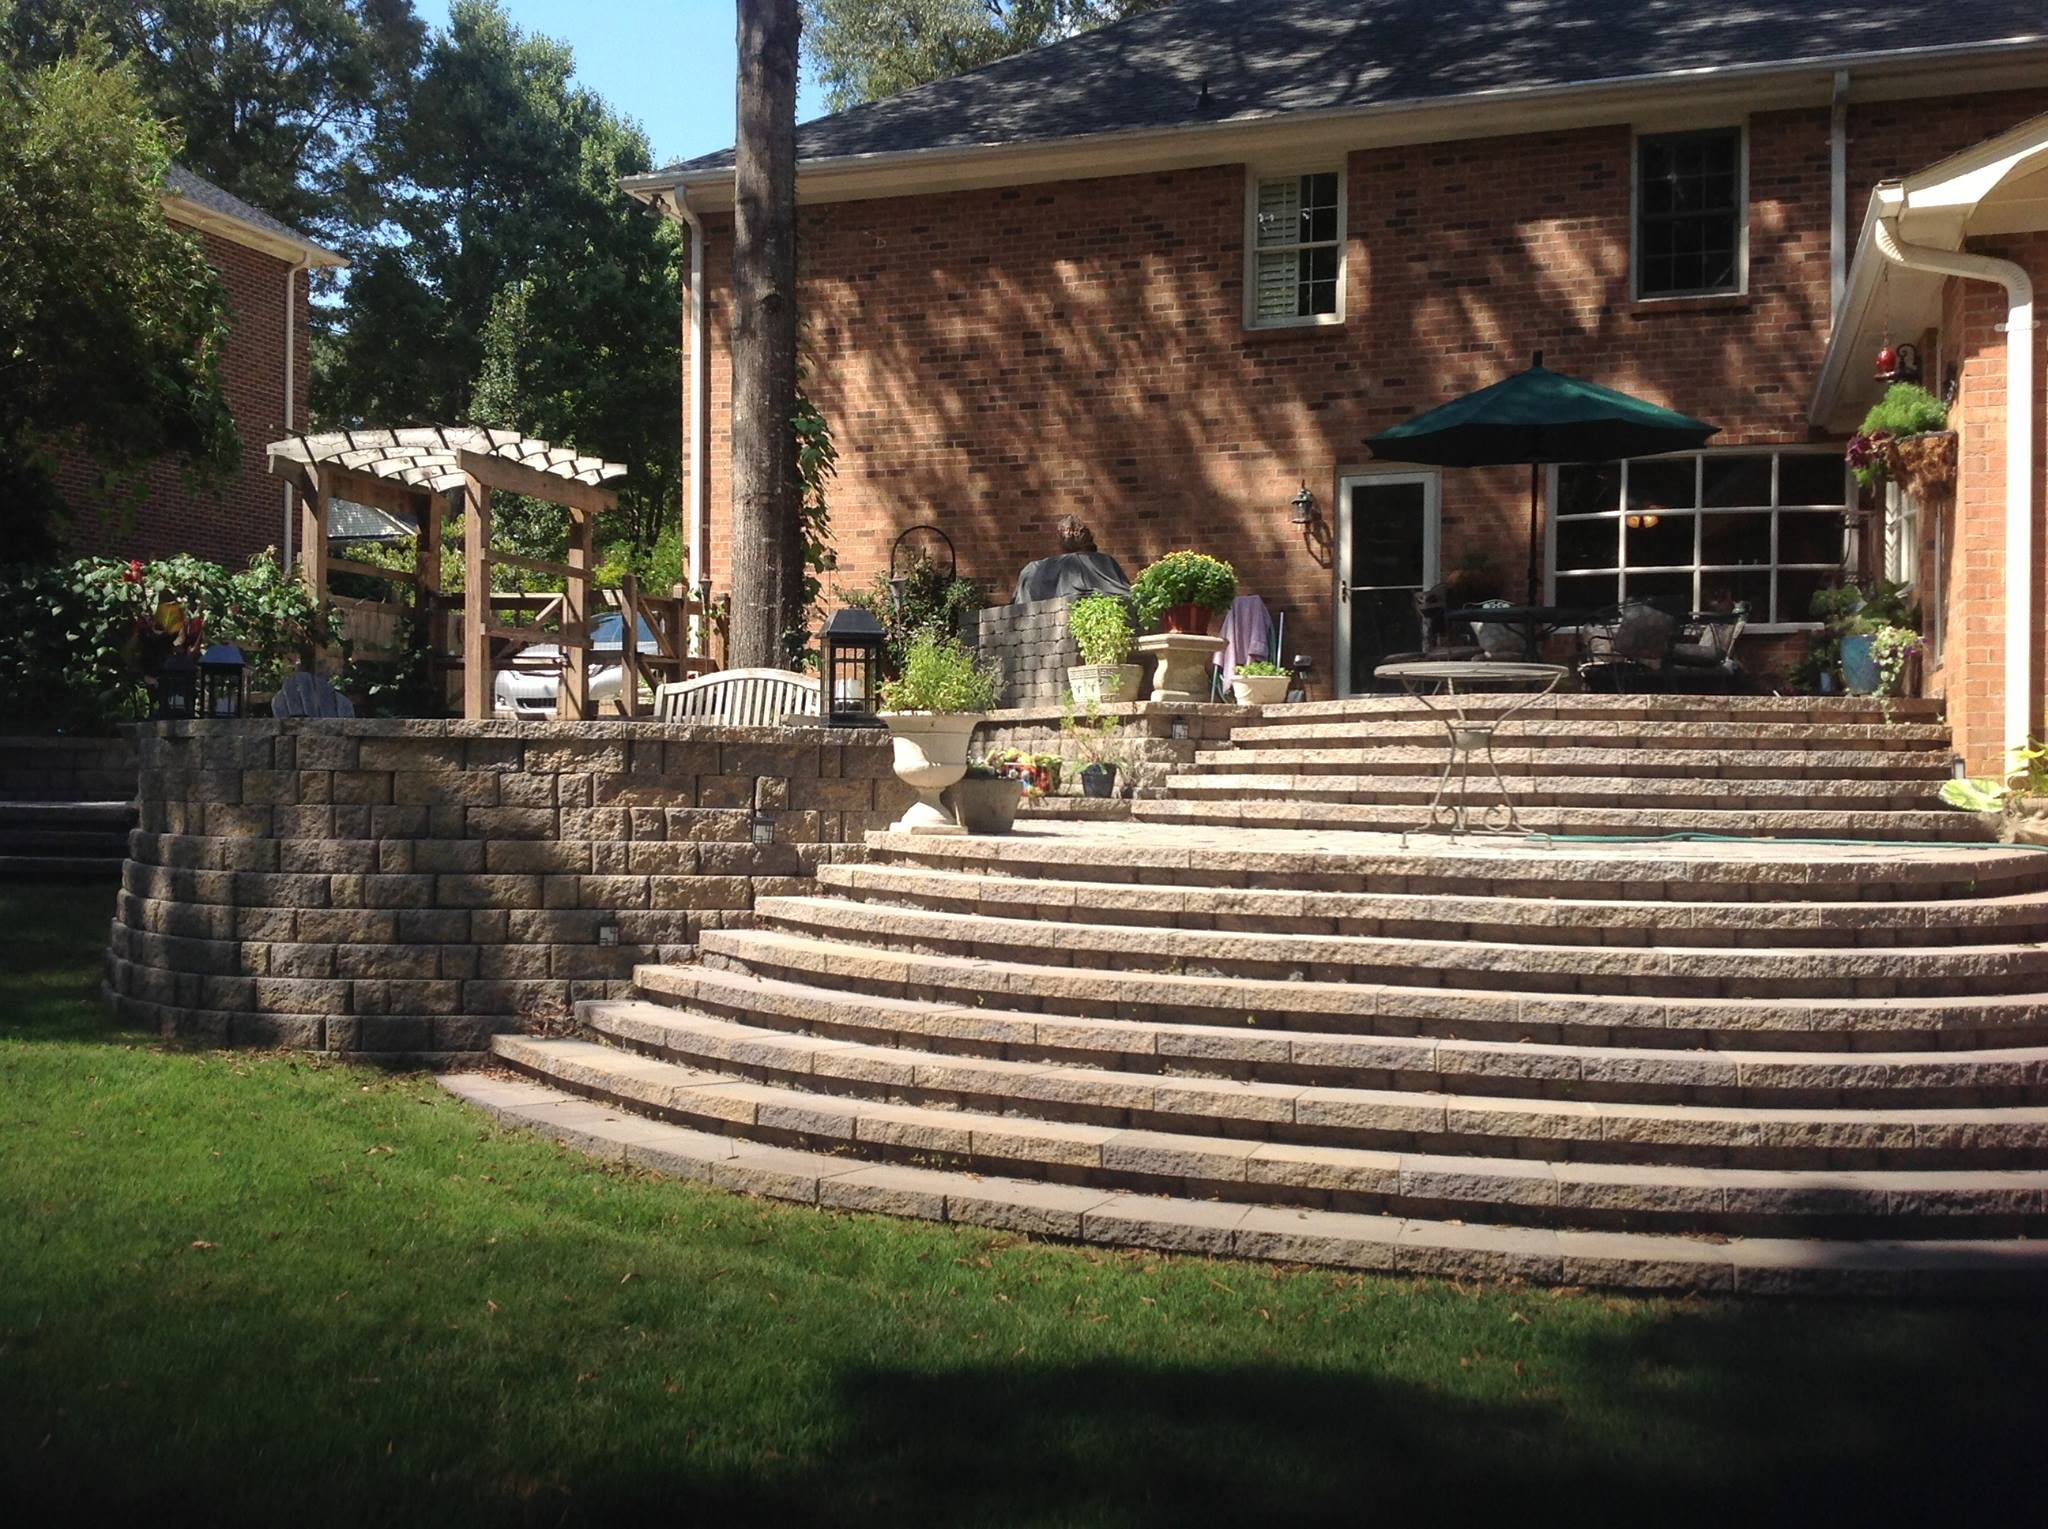 Top landscapers in charlotte nc - Stairs